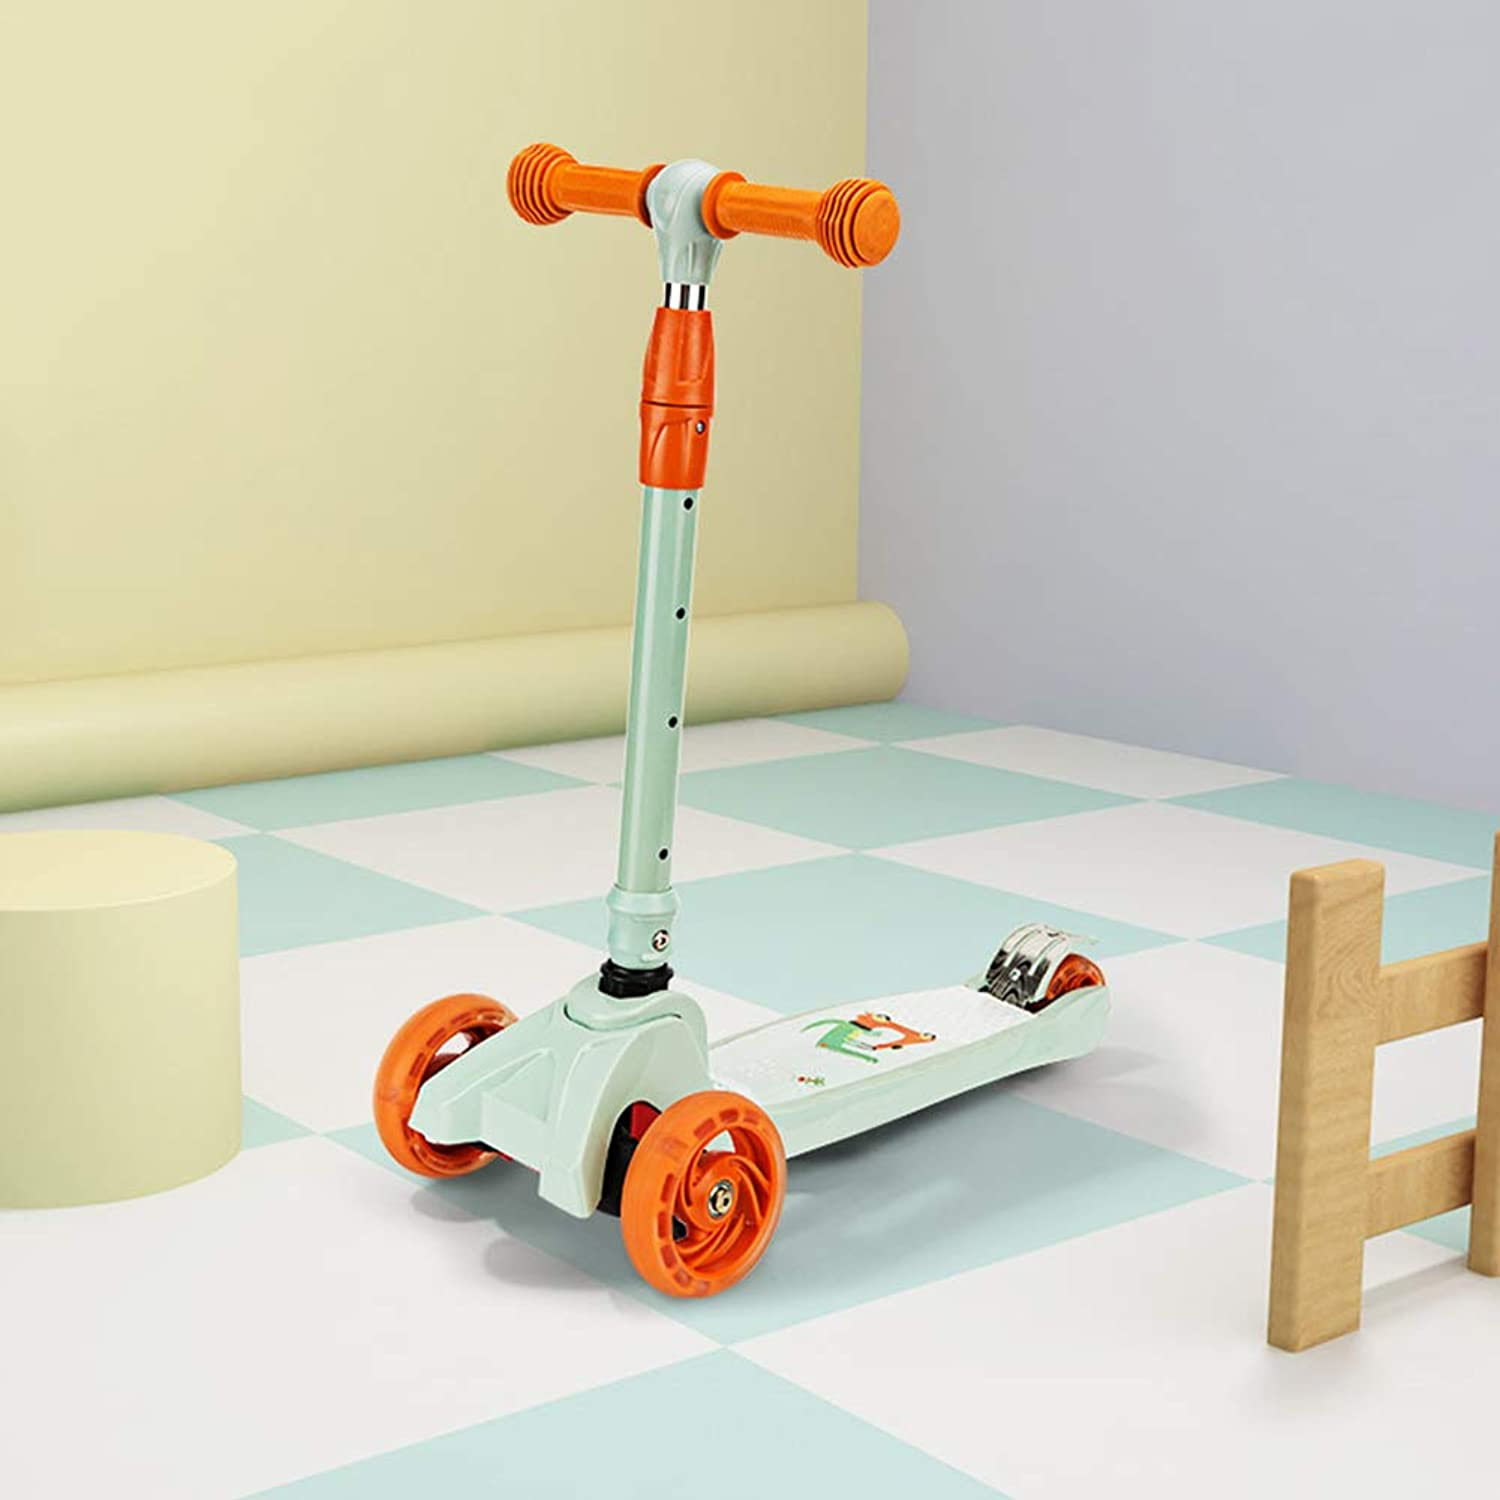 Scooter Complete Trick Scooter Intermediate and Beginner Stunt Scooters for Kids 8 Years and Up Teens and Adults Durable Freestyle Kick Scooter for Boys and Girls